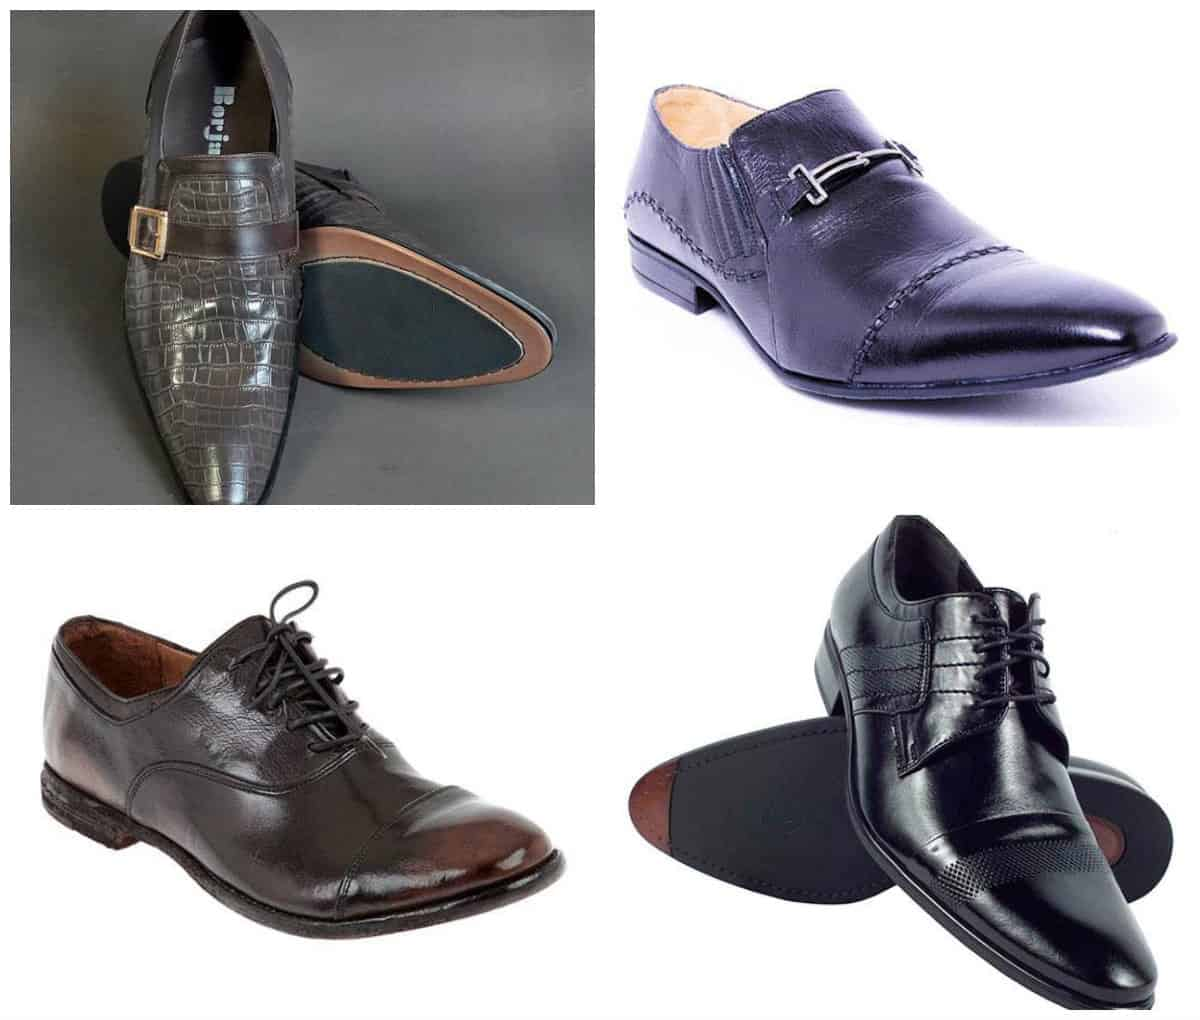 Mens Dress Shoe Trends